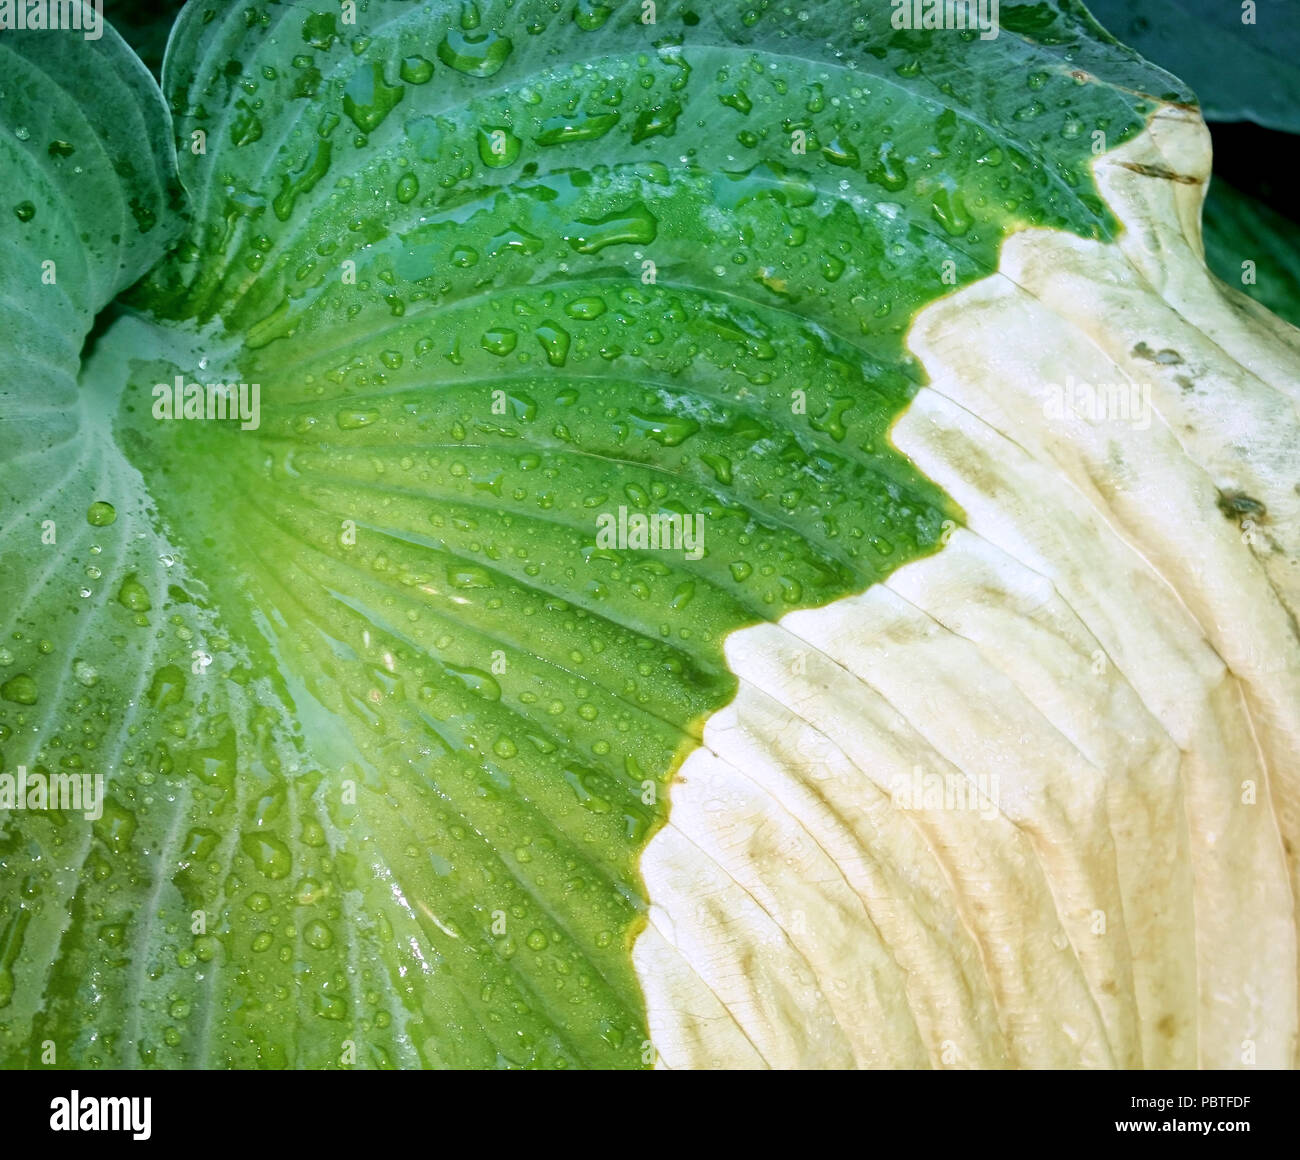 The Leaf Of A Hosta Plant That Has Been Infected With Disease Stock